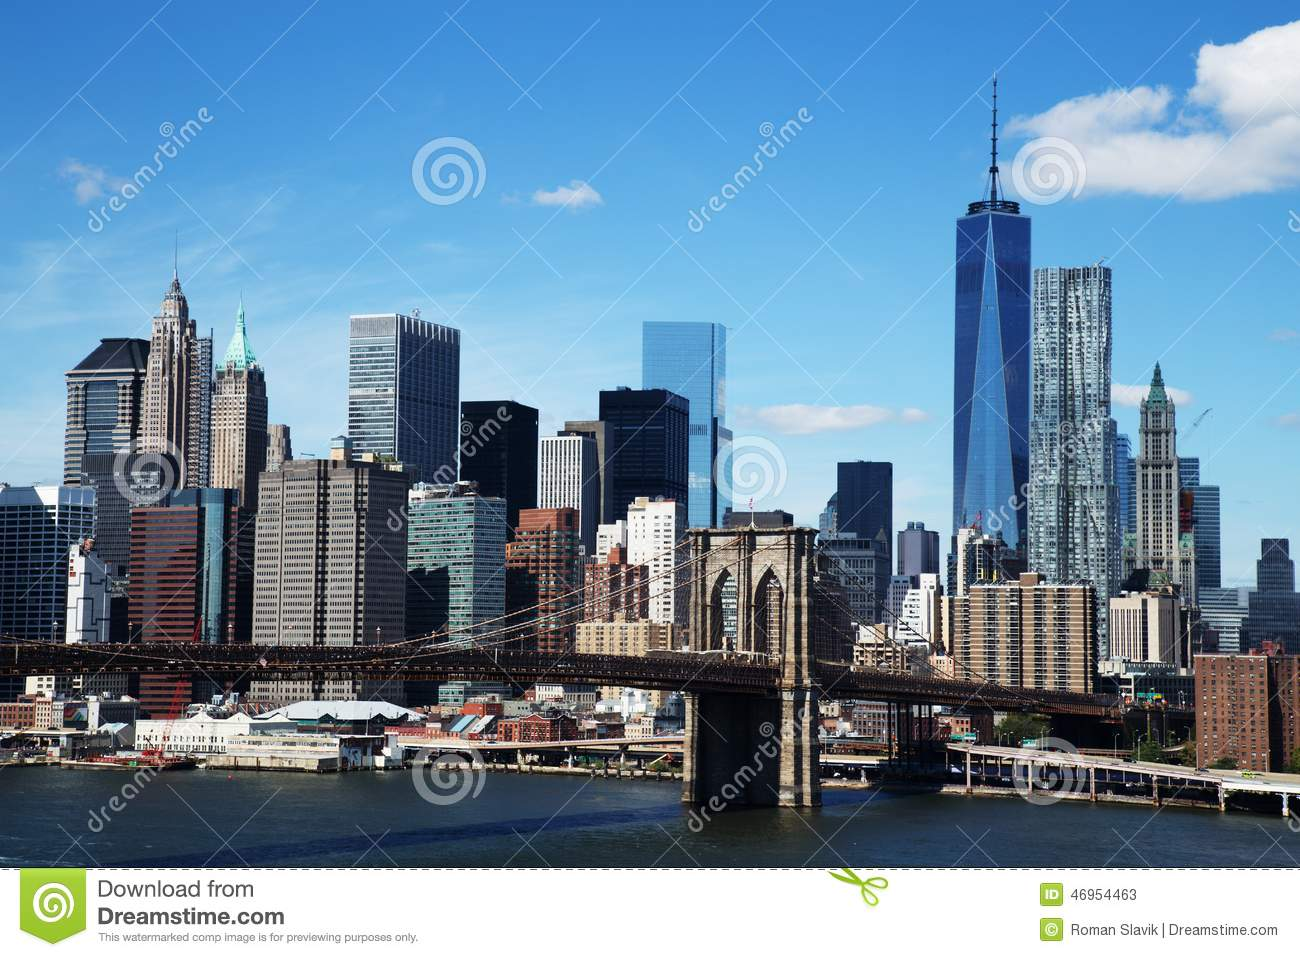 Aerial View Of New York City Downtown Skyline With Brooklyn Bridge.